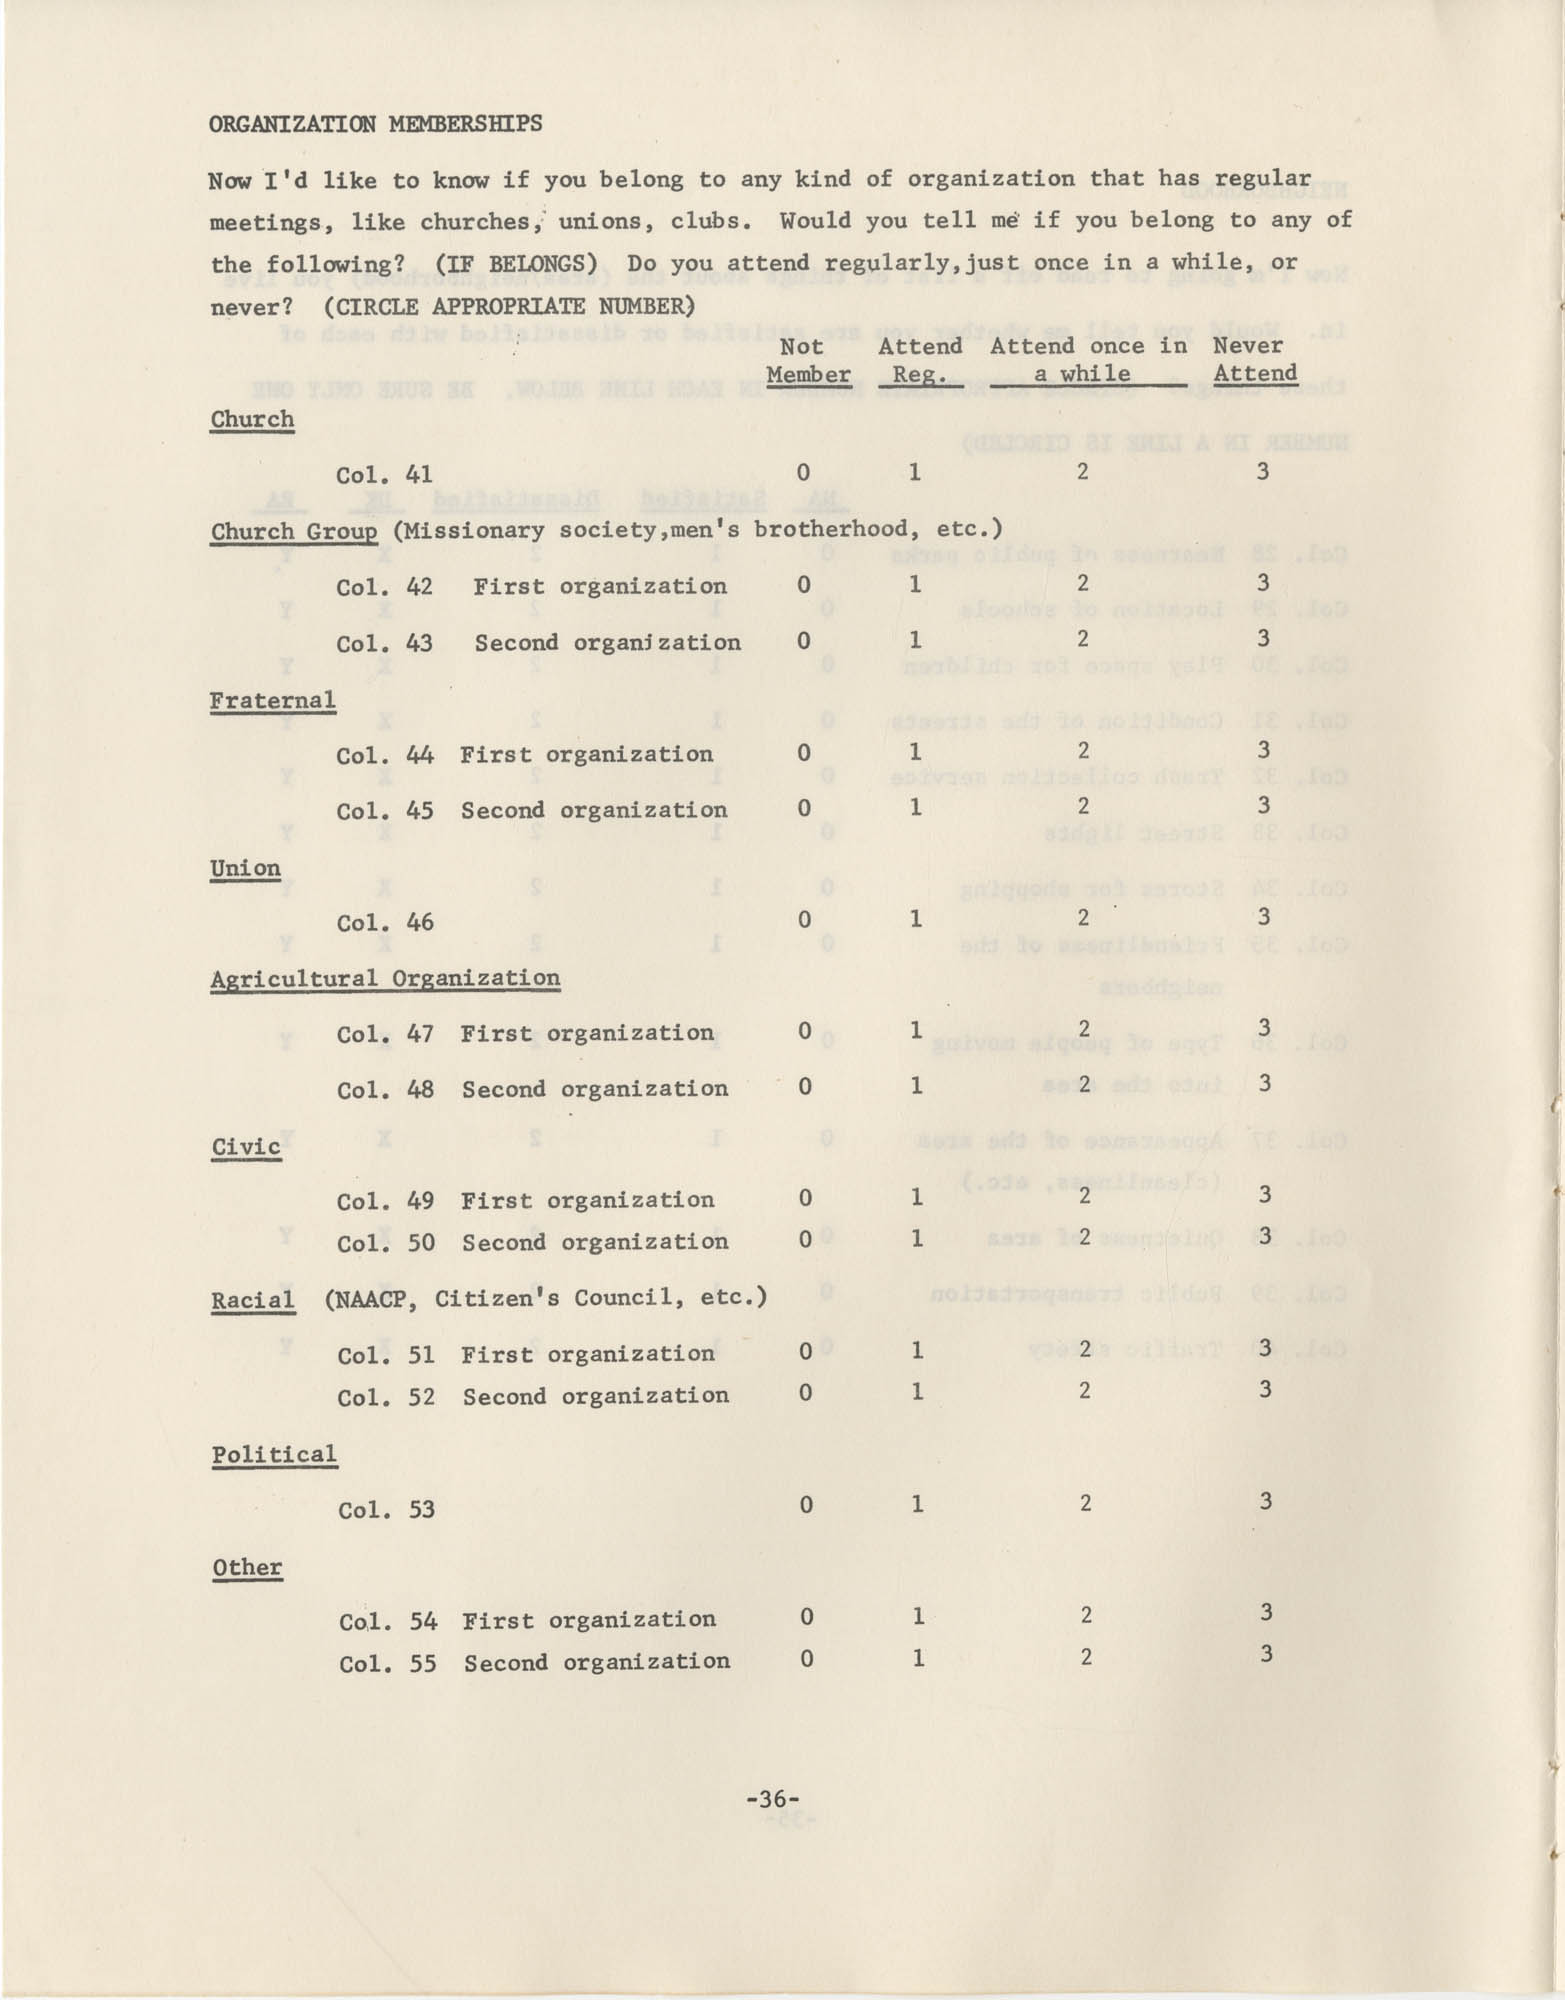 North Carolina Socio-Economic Survey, Page 36